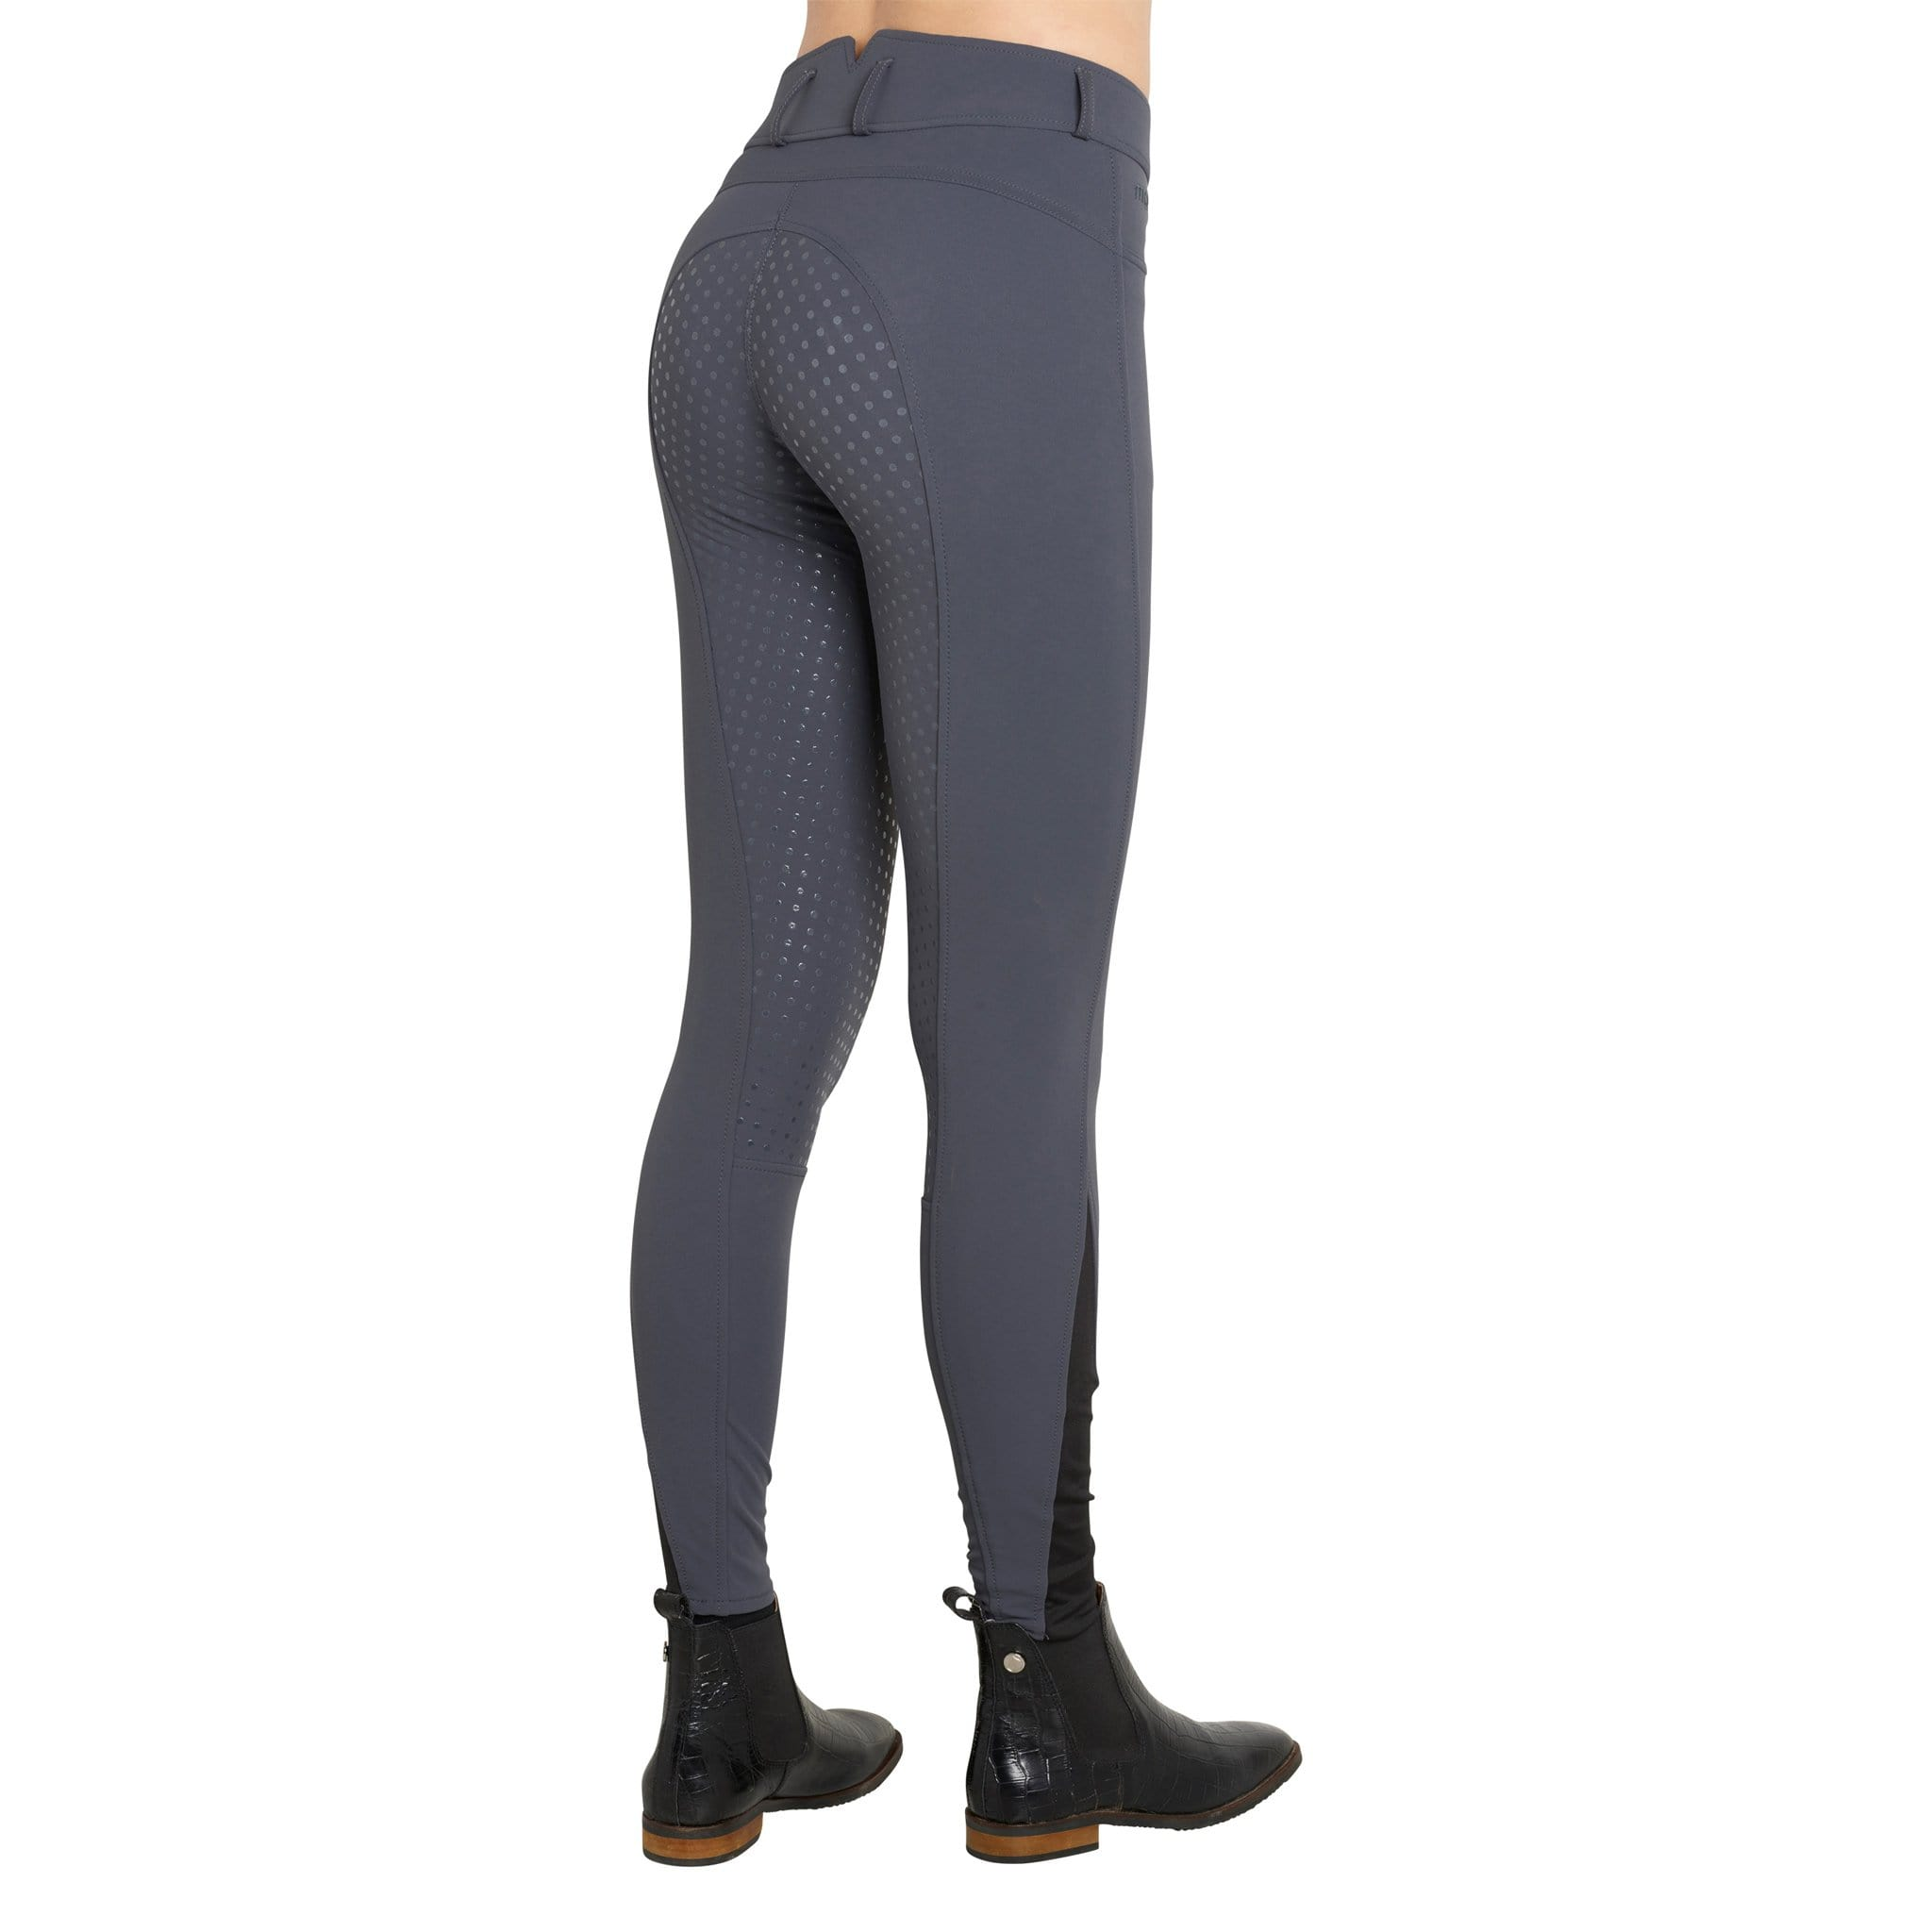 Montar High Waist Silicone Full Seat Breeches Dark Grey Studio 2078